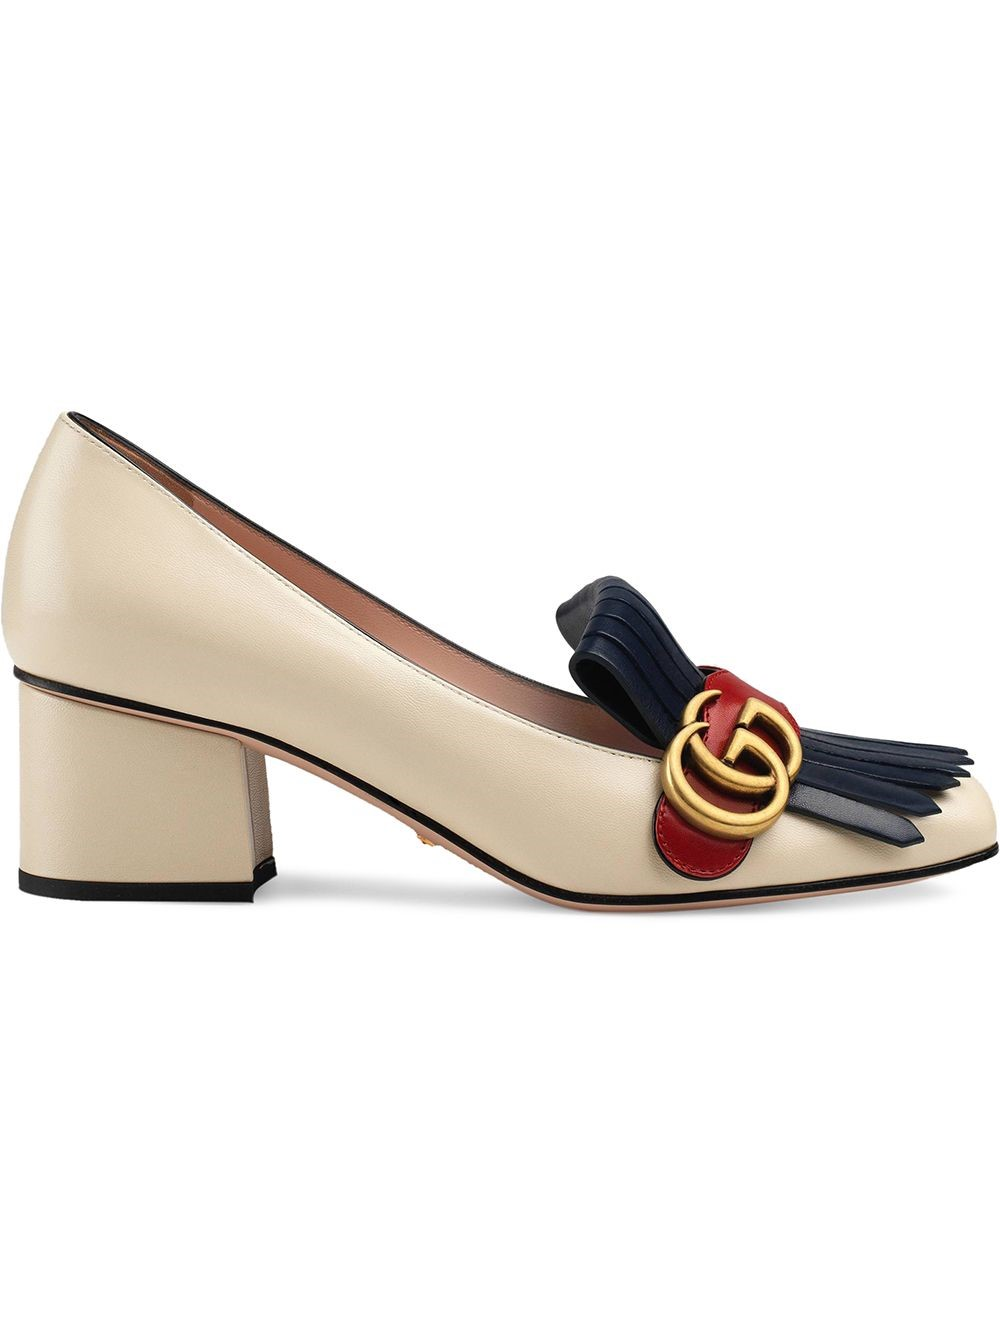 b6e3125db5dc gucci KID MALAGA LOAFERS available on montiboutique.com - 25961